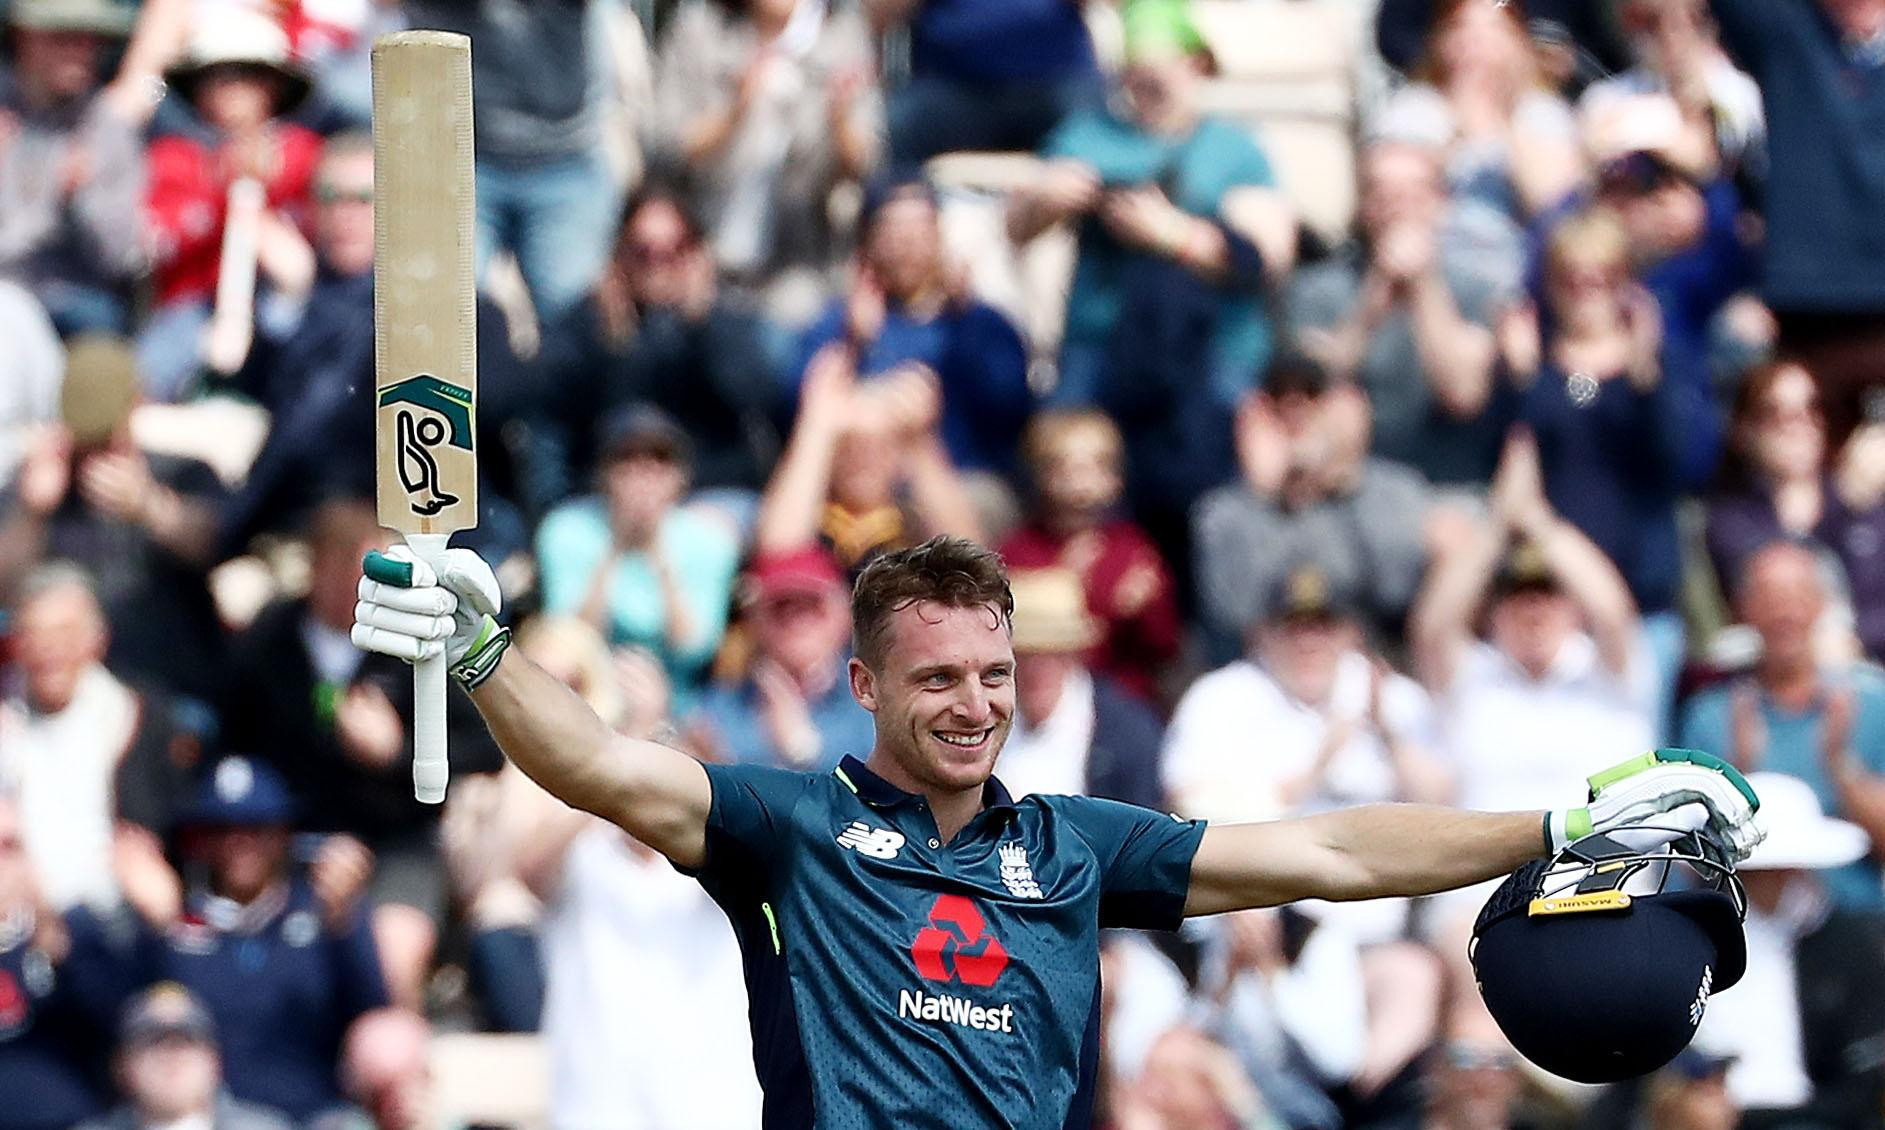 Jos Buttler's 50-ball century takes England past Pakistan in second ODI